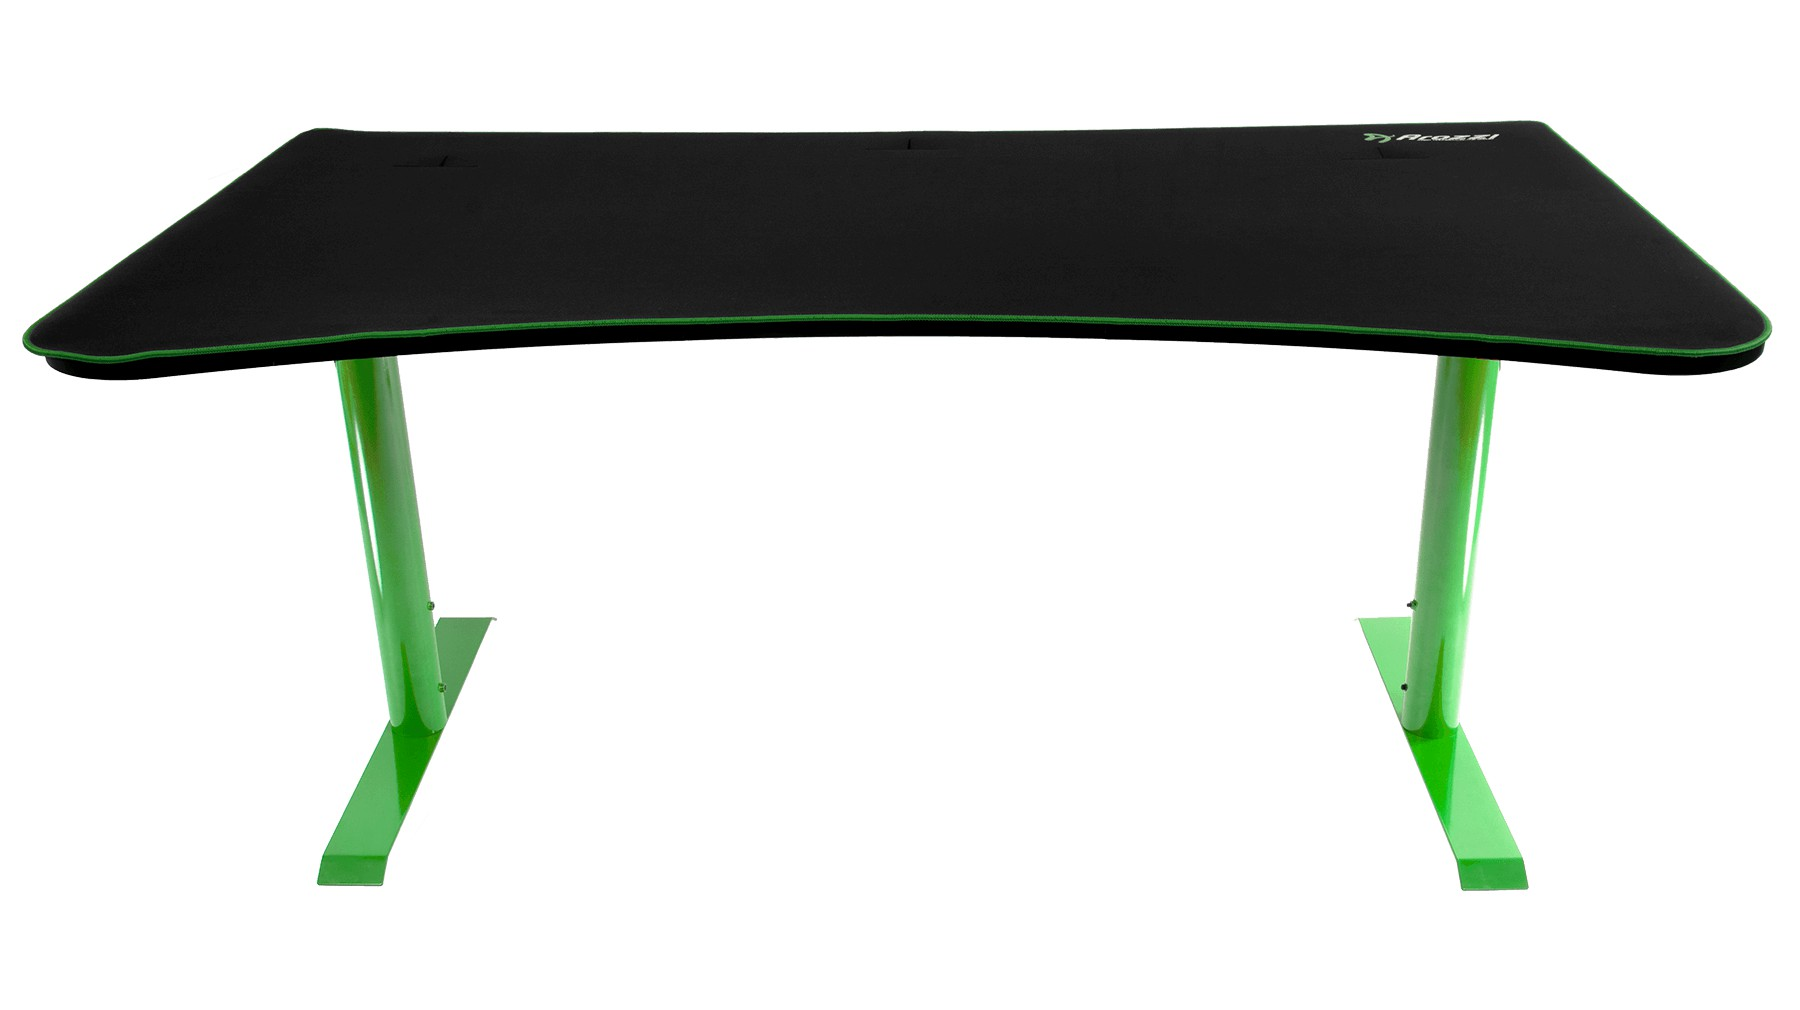 AROZZI ARENA green gaming desk